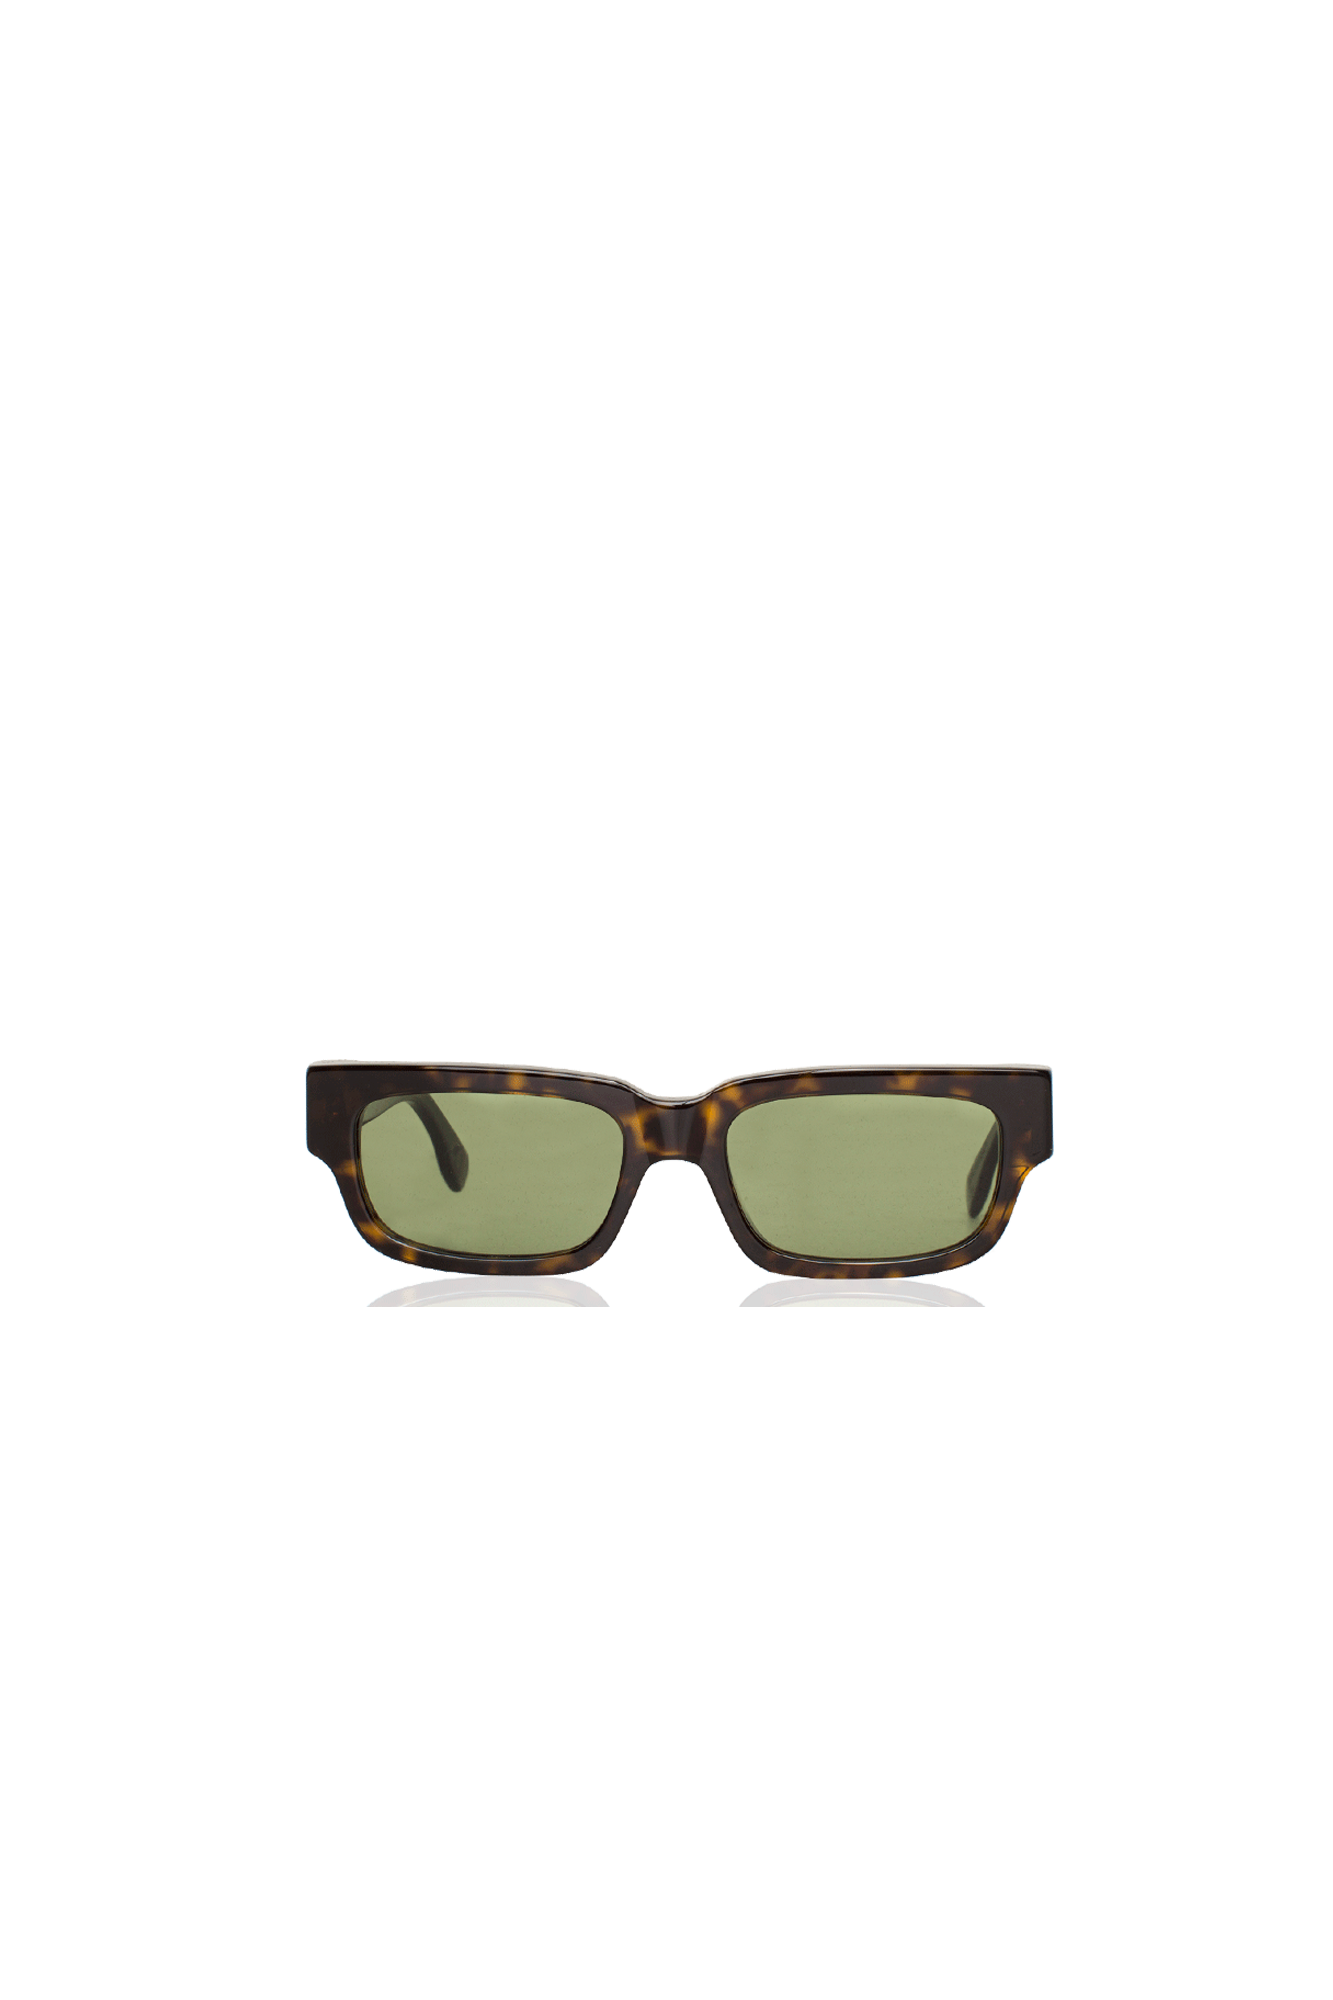 Retrosuperfuture Sunglasses Roma 3627 Green I5DU#000#GRN#OS - One Block Down